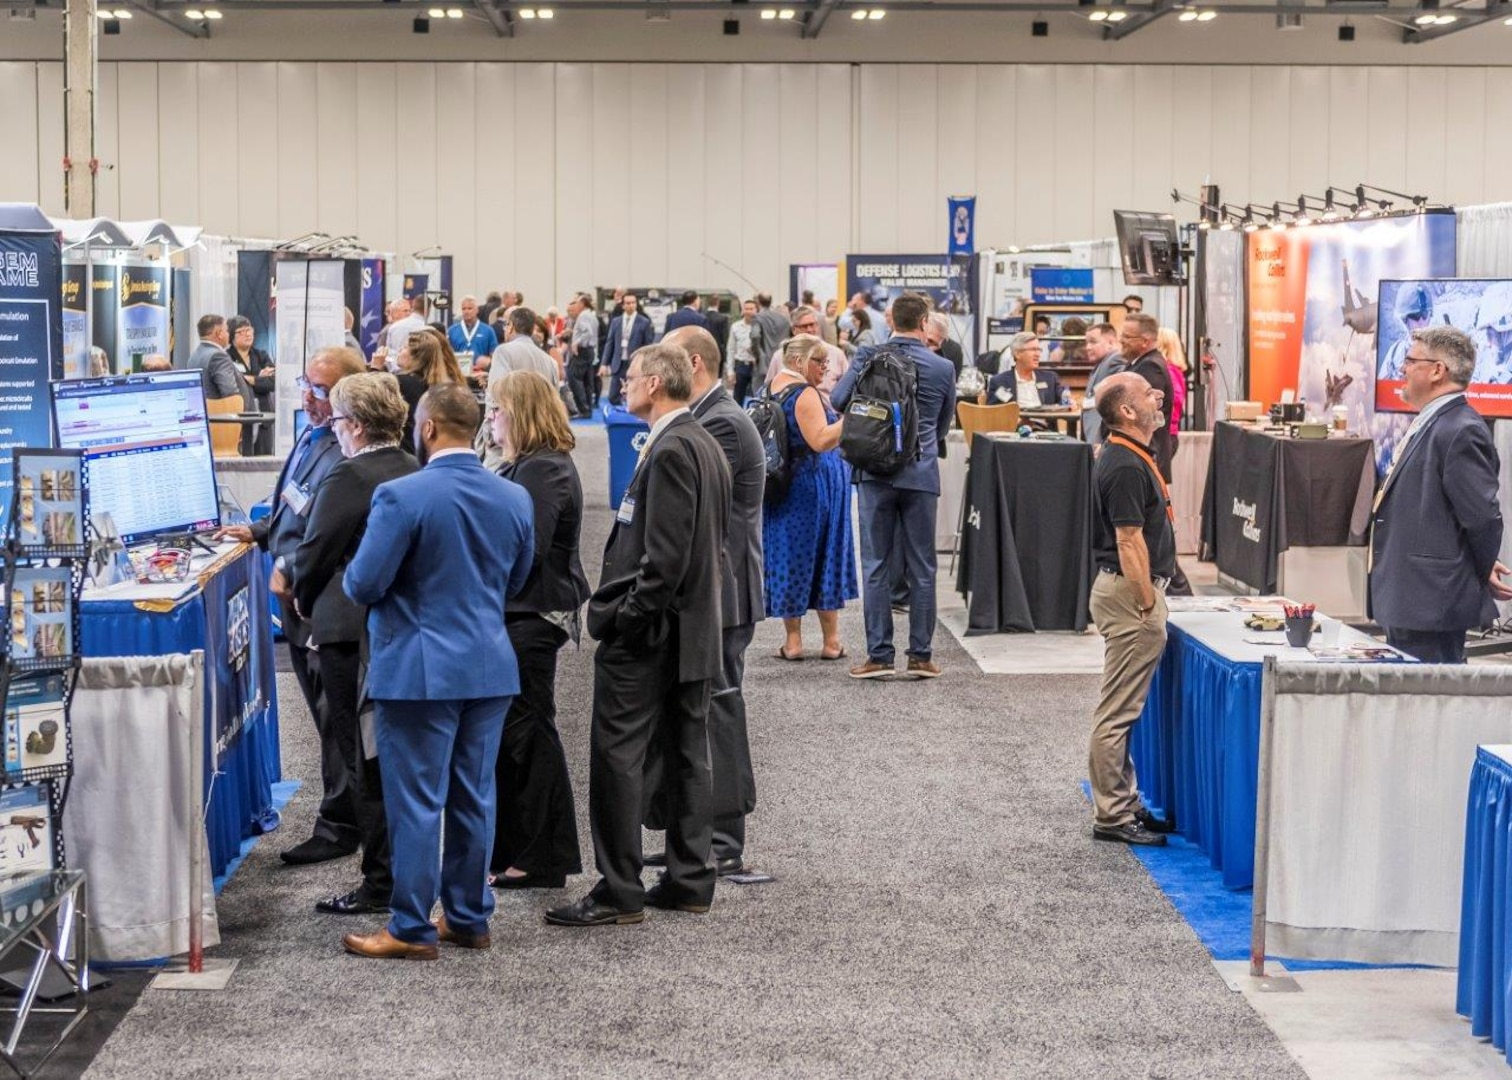 Representatives from more than 300 defense logistics industrial support organizations attended the 2018 DLA Land and Maritime Supplier Conference